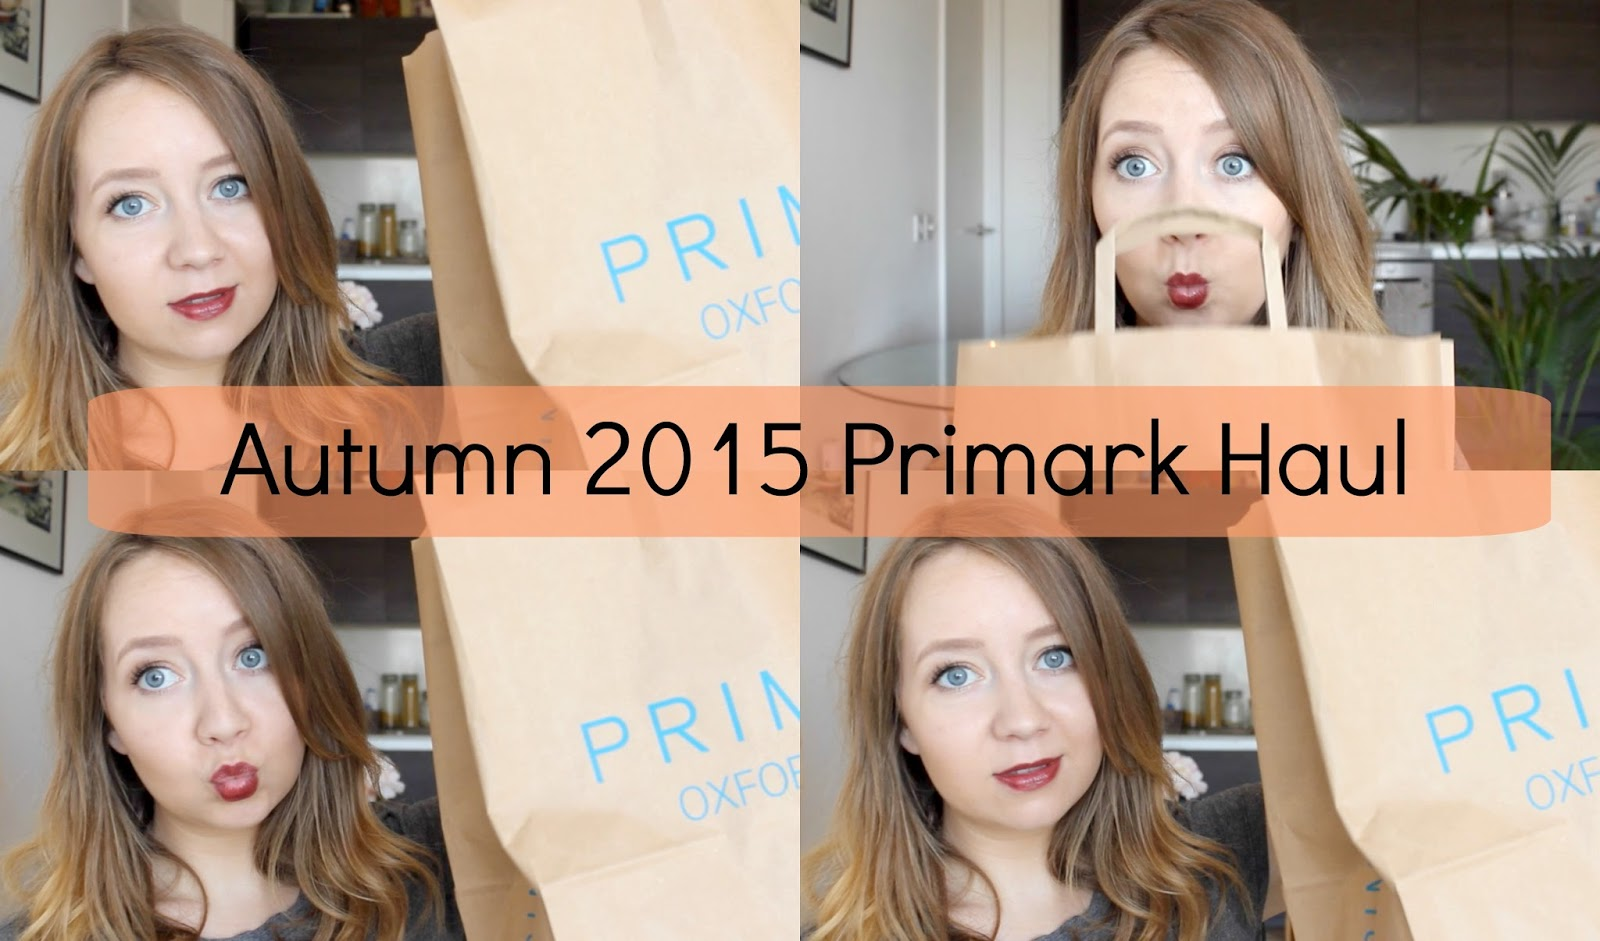 Autumn Primark Haul